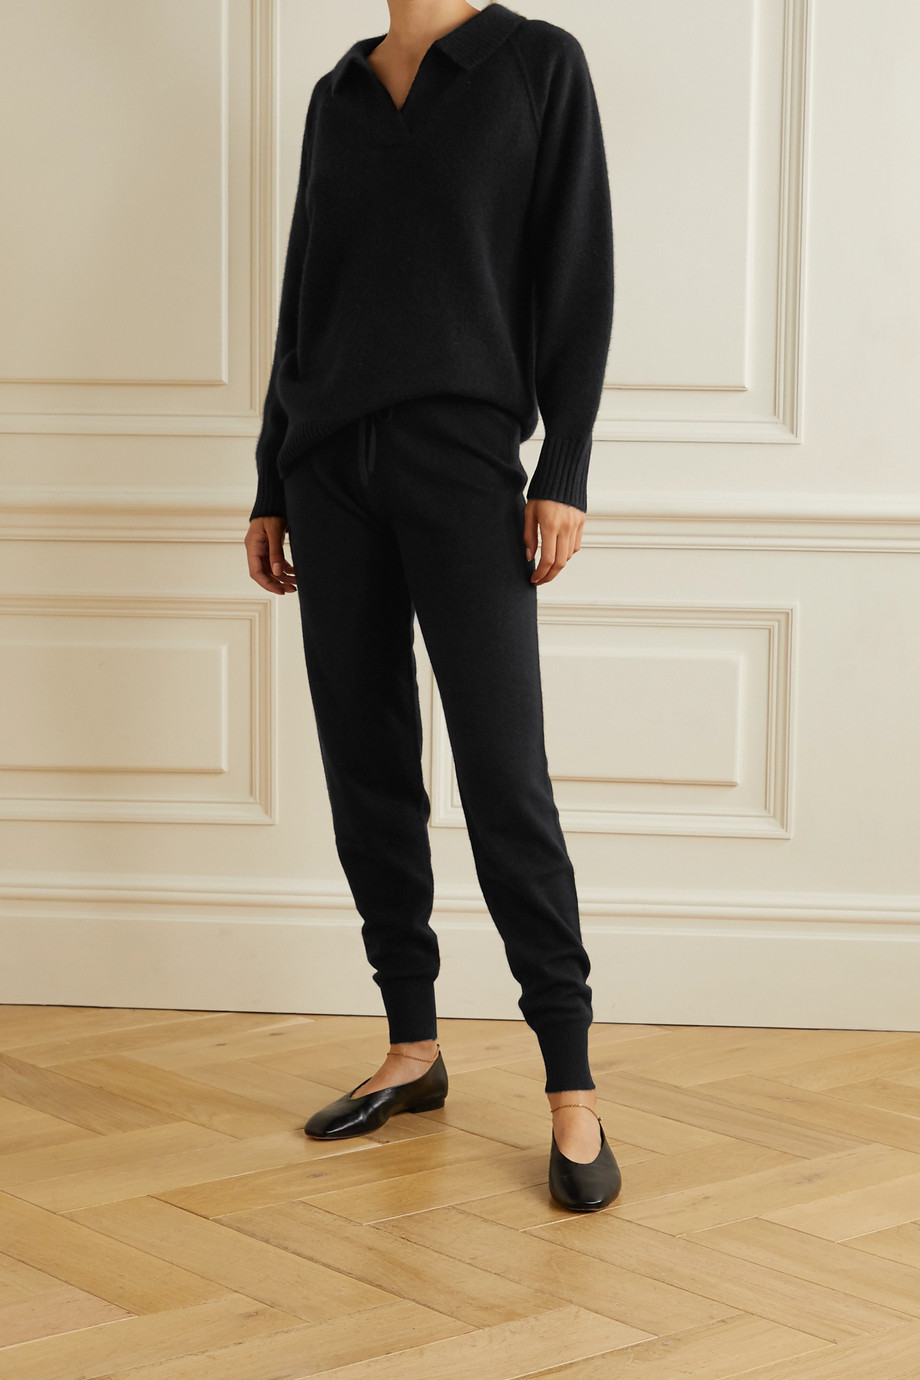 Madeleine Thompson Jodie cashmere sweater